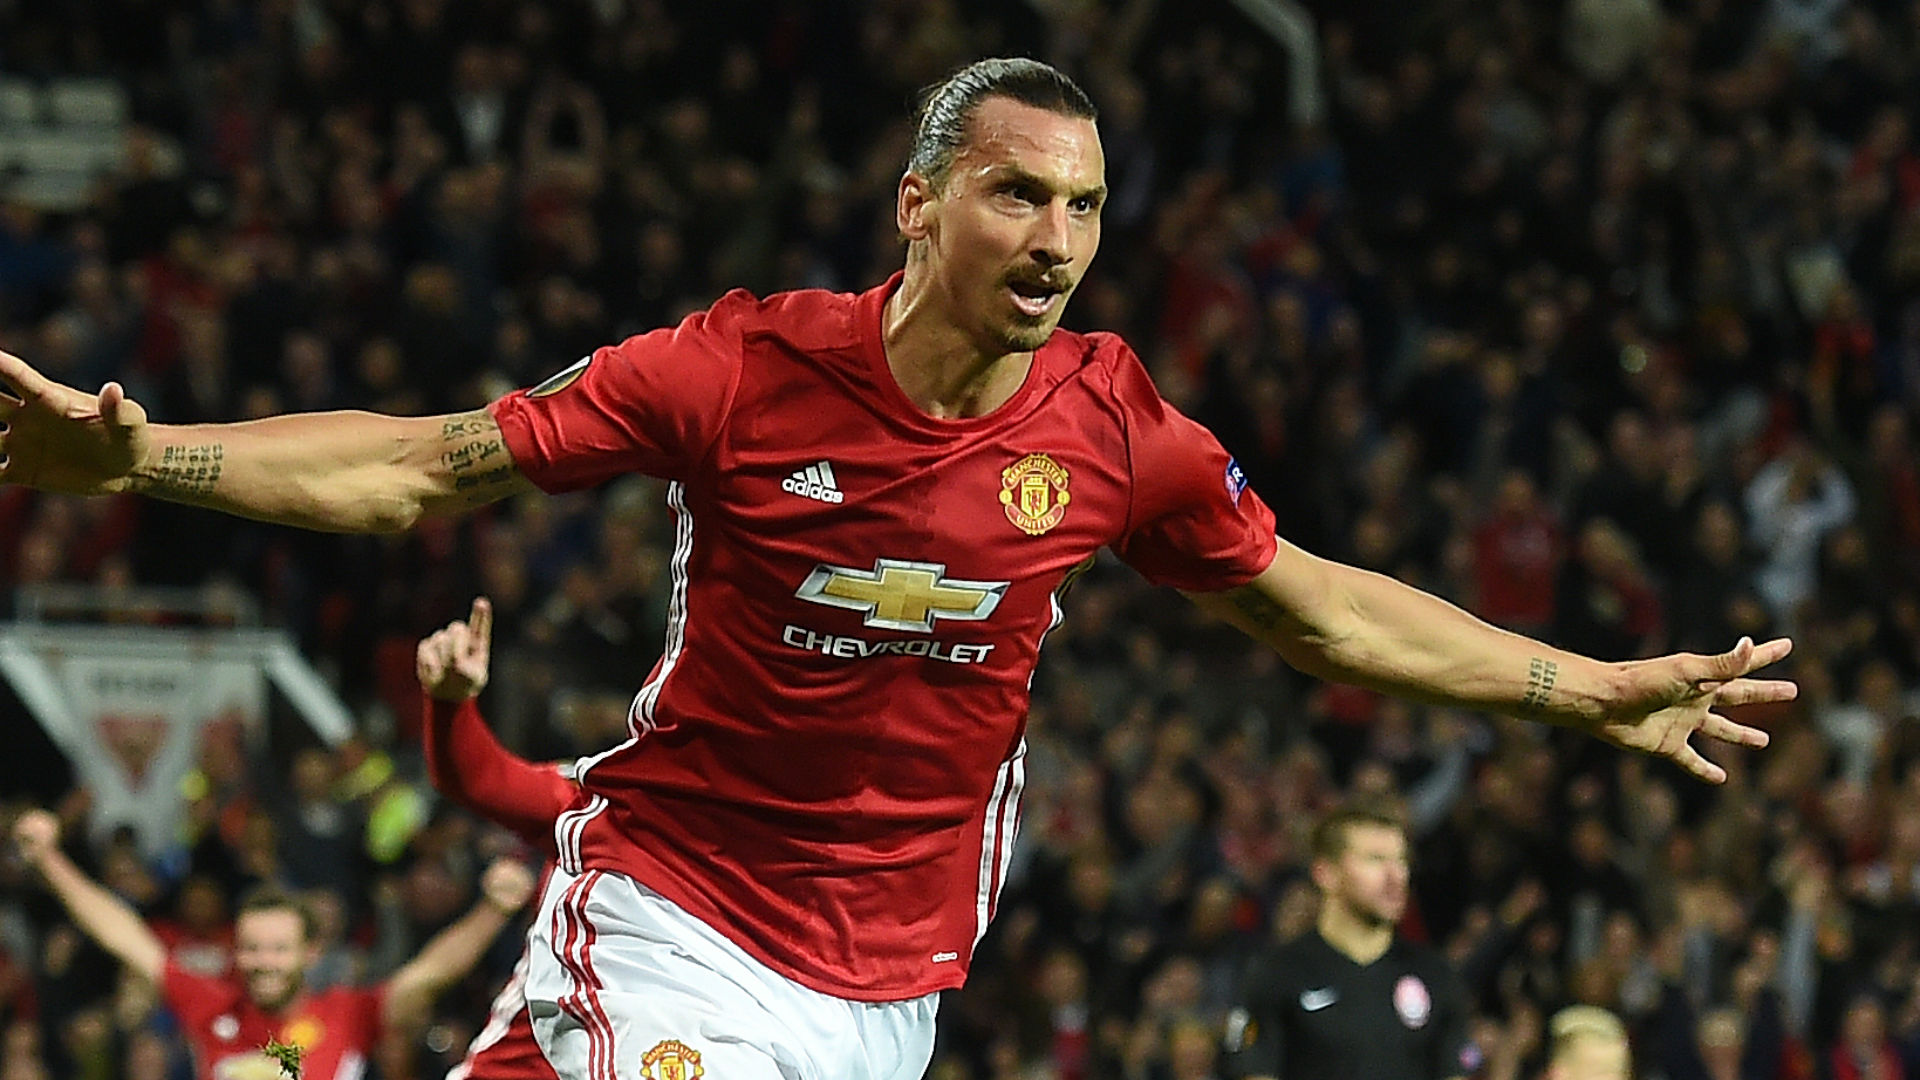 Ouch! Michael Owen causes uproar with strong criticism of Zlatan Ibrahimovic